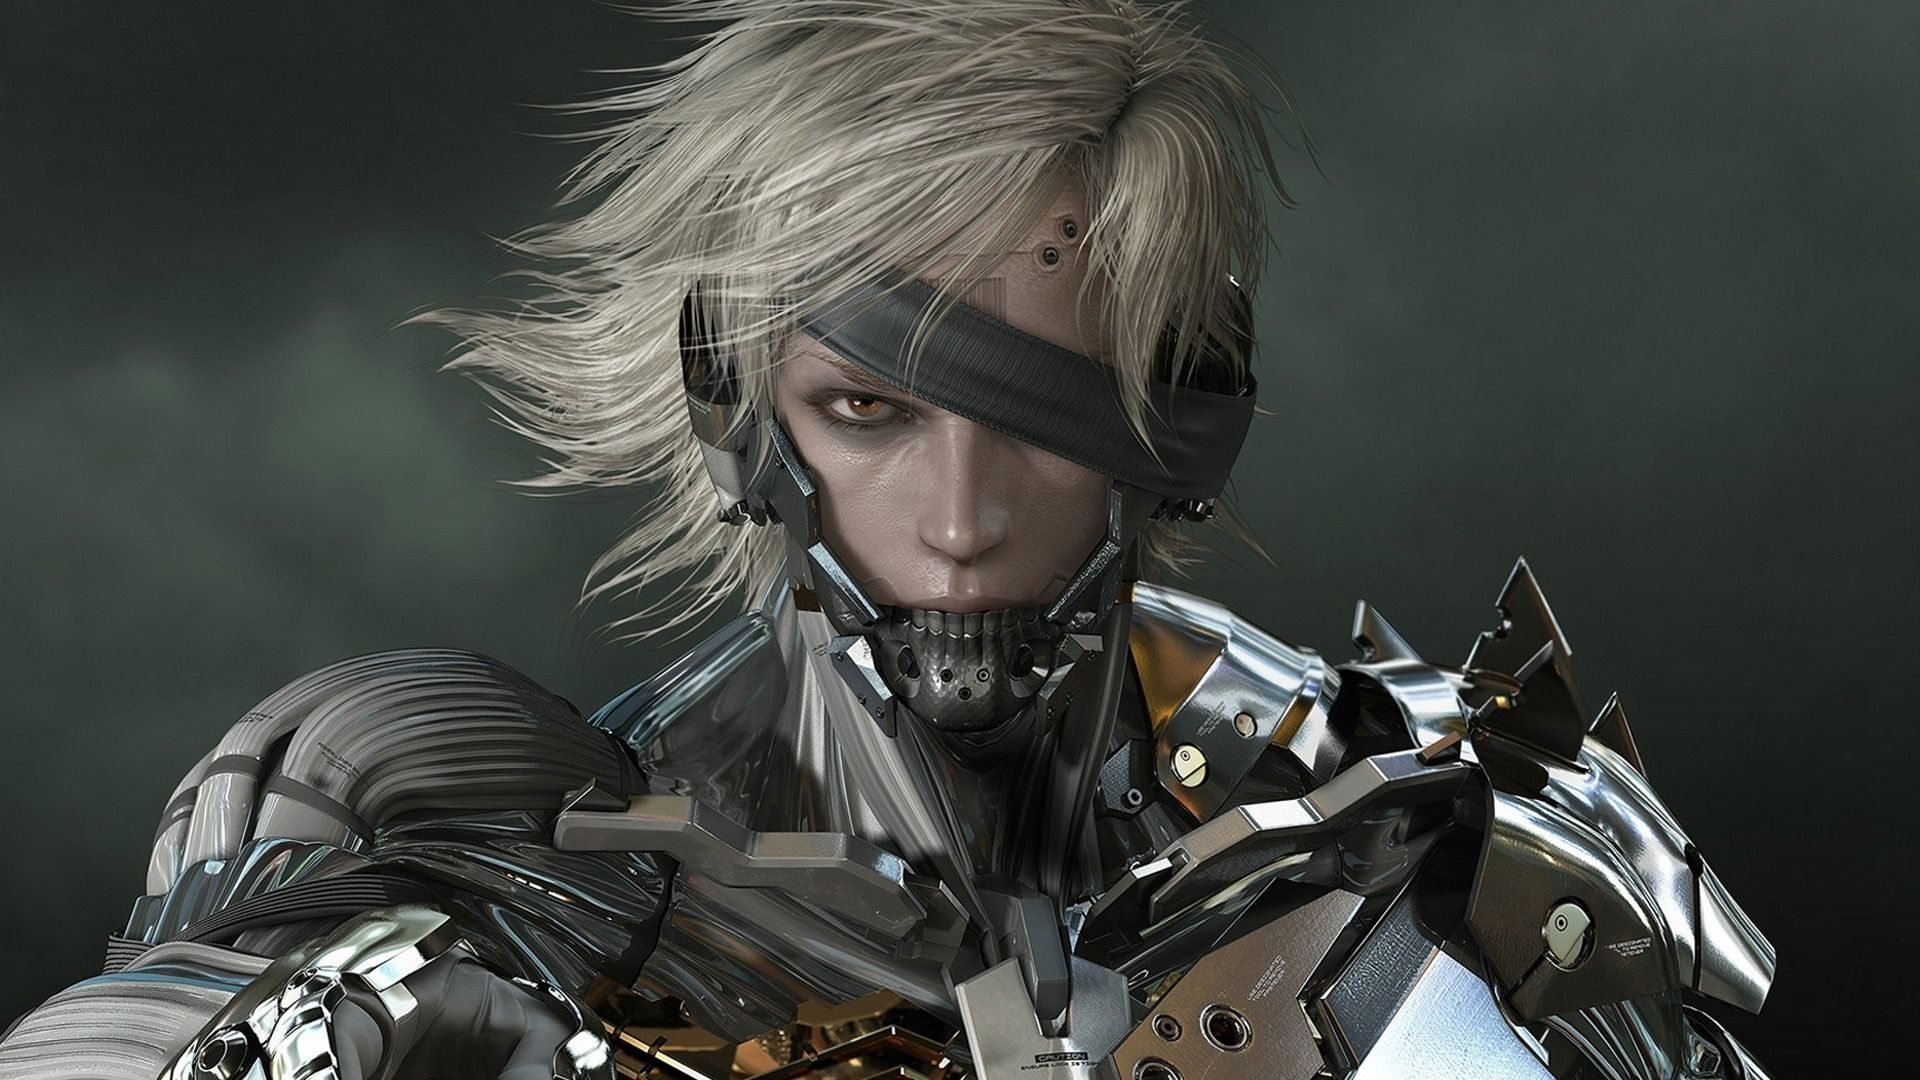 Metal gear rising 2012 wallpaper jeu 1920x1080 fond dcran metal gear rising 2012 wallpaper jeu 1920x1080 fond dcran tlcharger 10wallpaper voltagebd